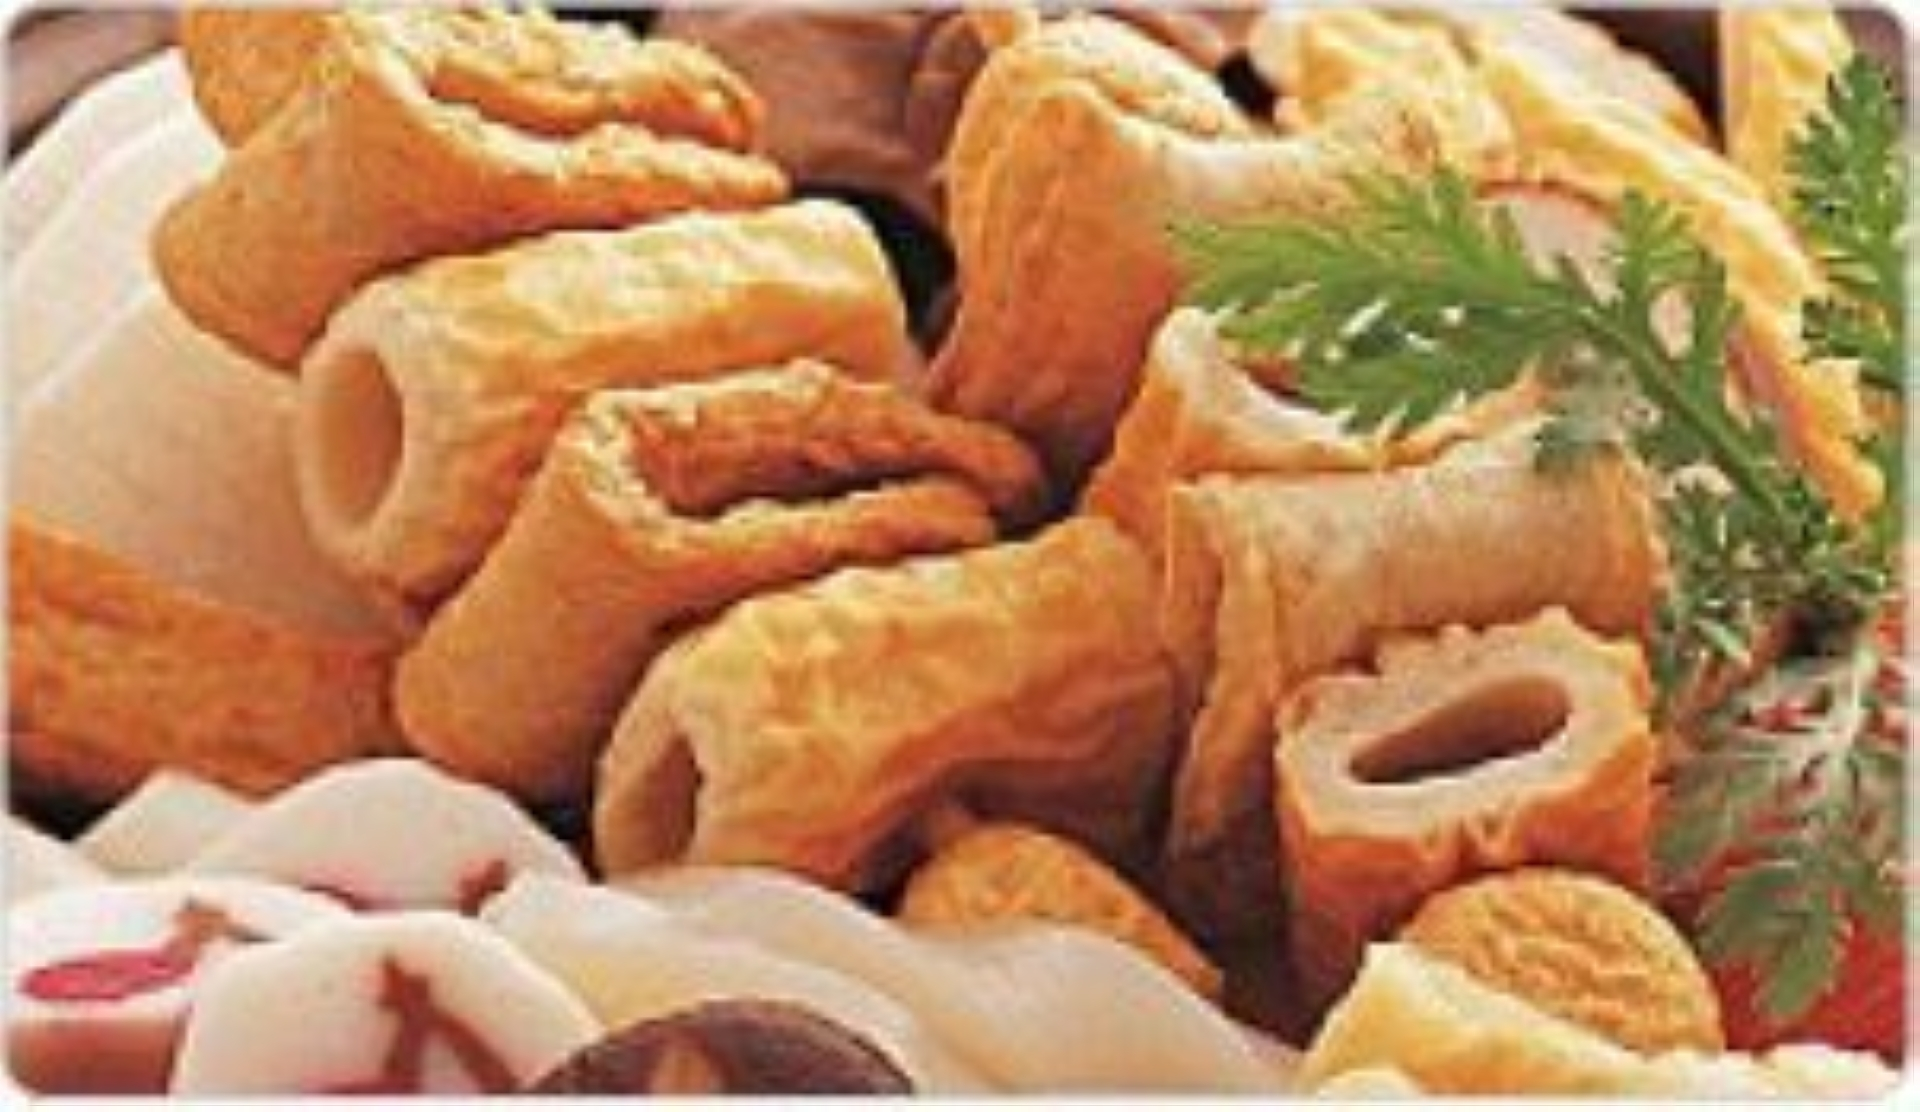 Eomuk (Korean fish cake) is a nutritious snack for everyone.